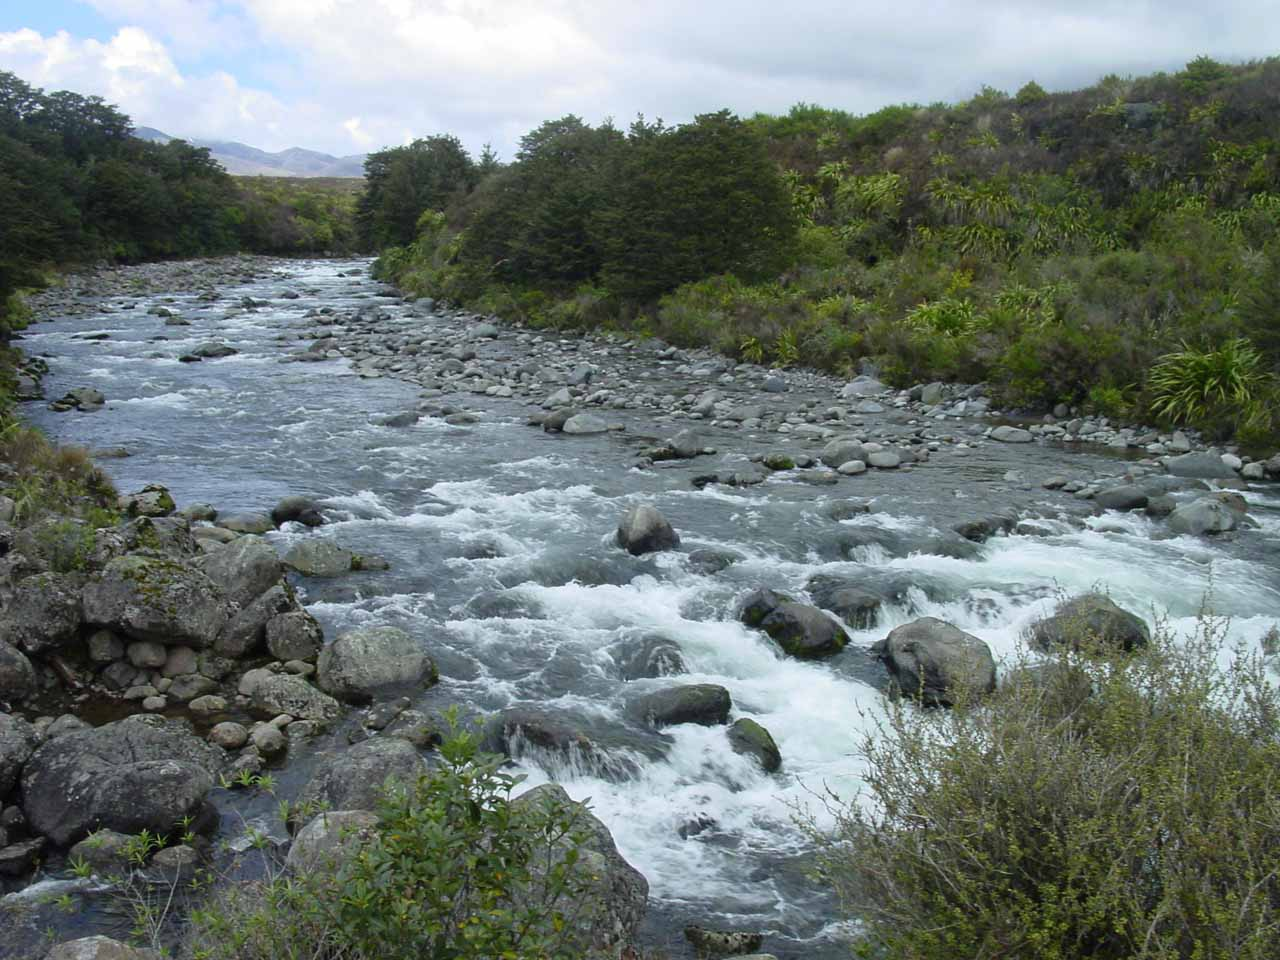 Looking further upstream from what I thought were the Mahuia Rapids